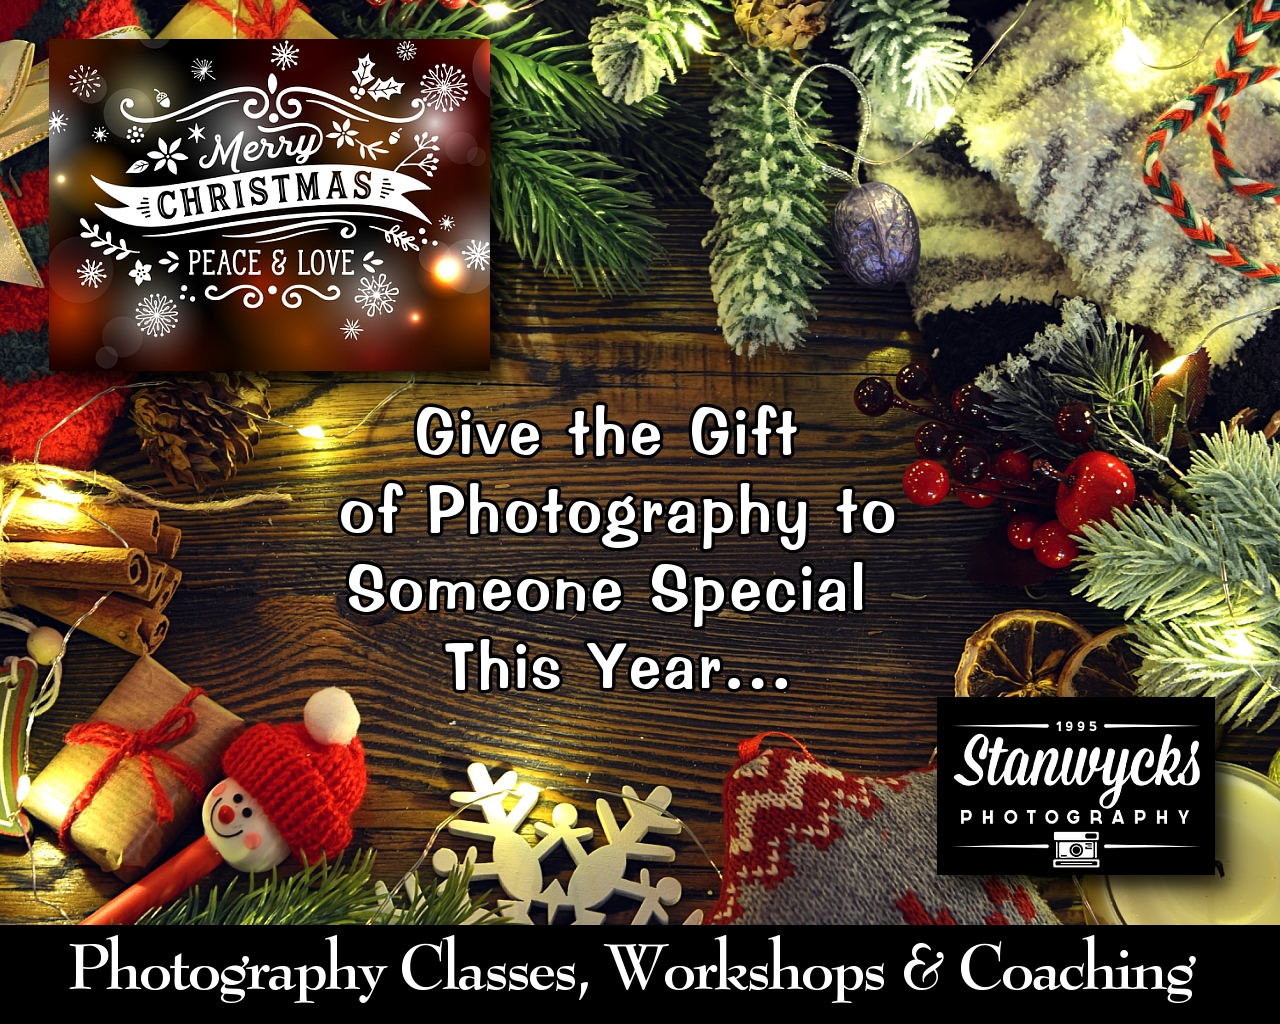 Holiday Web Pages 053 (Sheet 53)